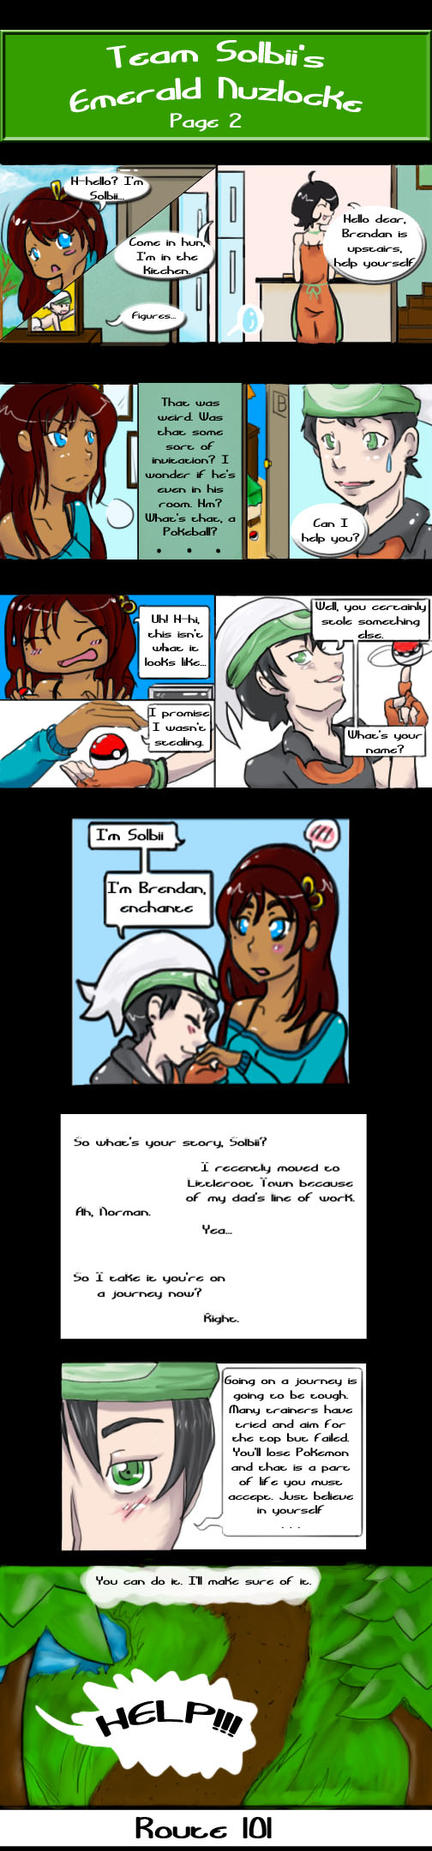 Team Solbii's Emerald Nuzlocke Page 2: Revamped. by SolbiiMelody